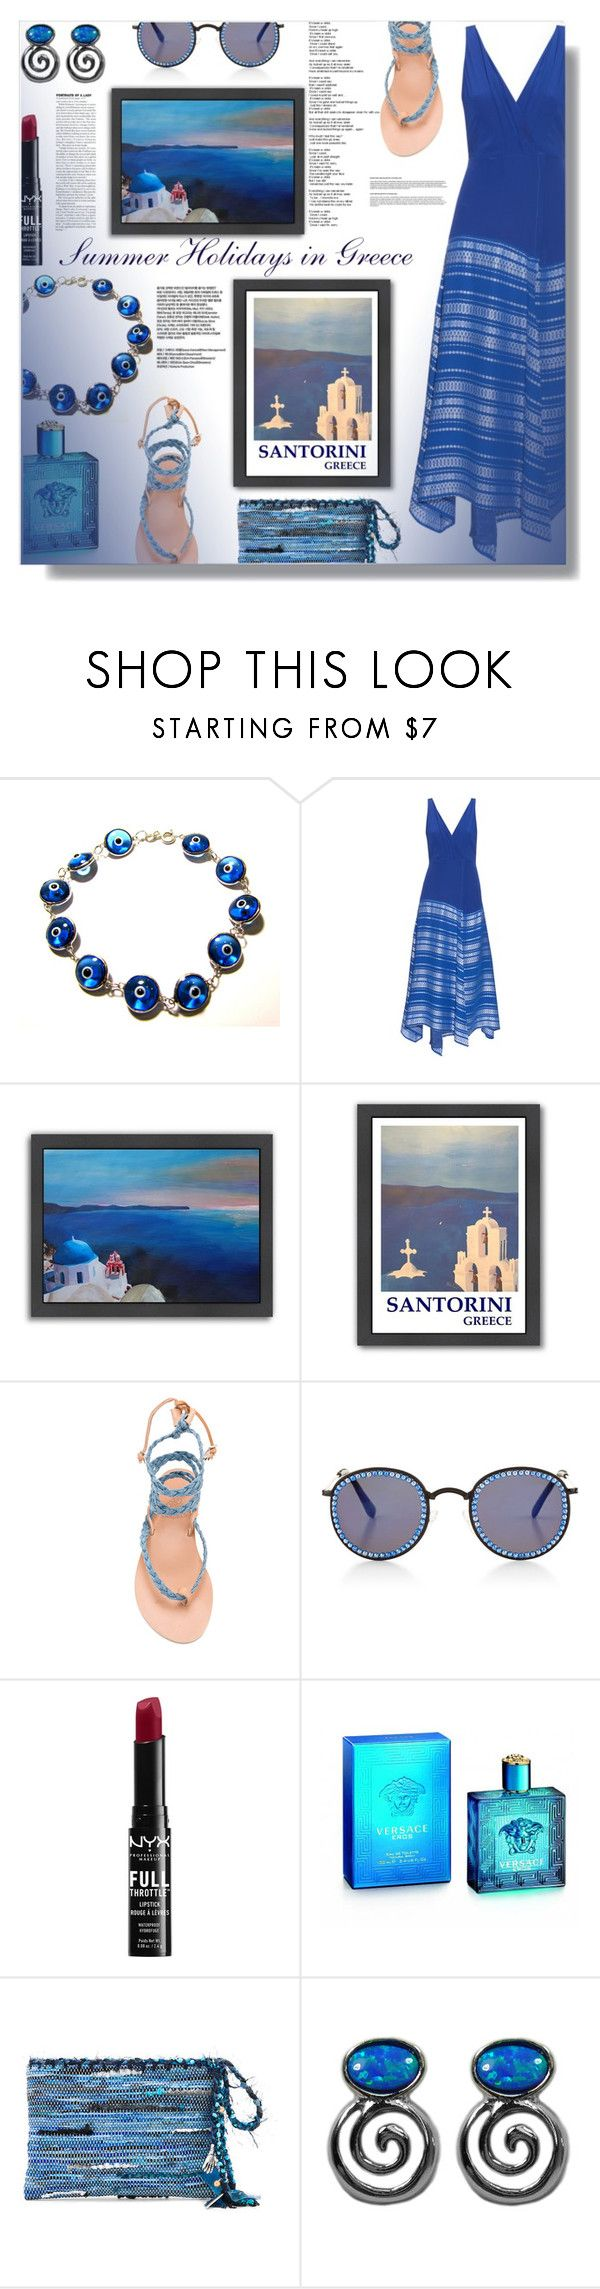 """""""Summer Holidays in Greece!"""" by sarahguo ❤ liked on Polyvore featuring Zeus+Dione, Americanflat, Ancient Greek Sandals, Frēda Banana, NYX, Versace, Greece and summerholidays"""